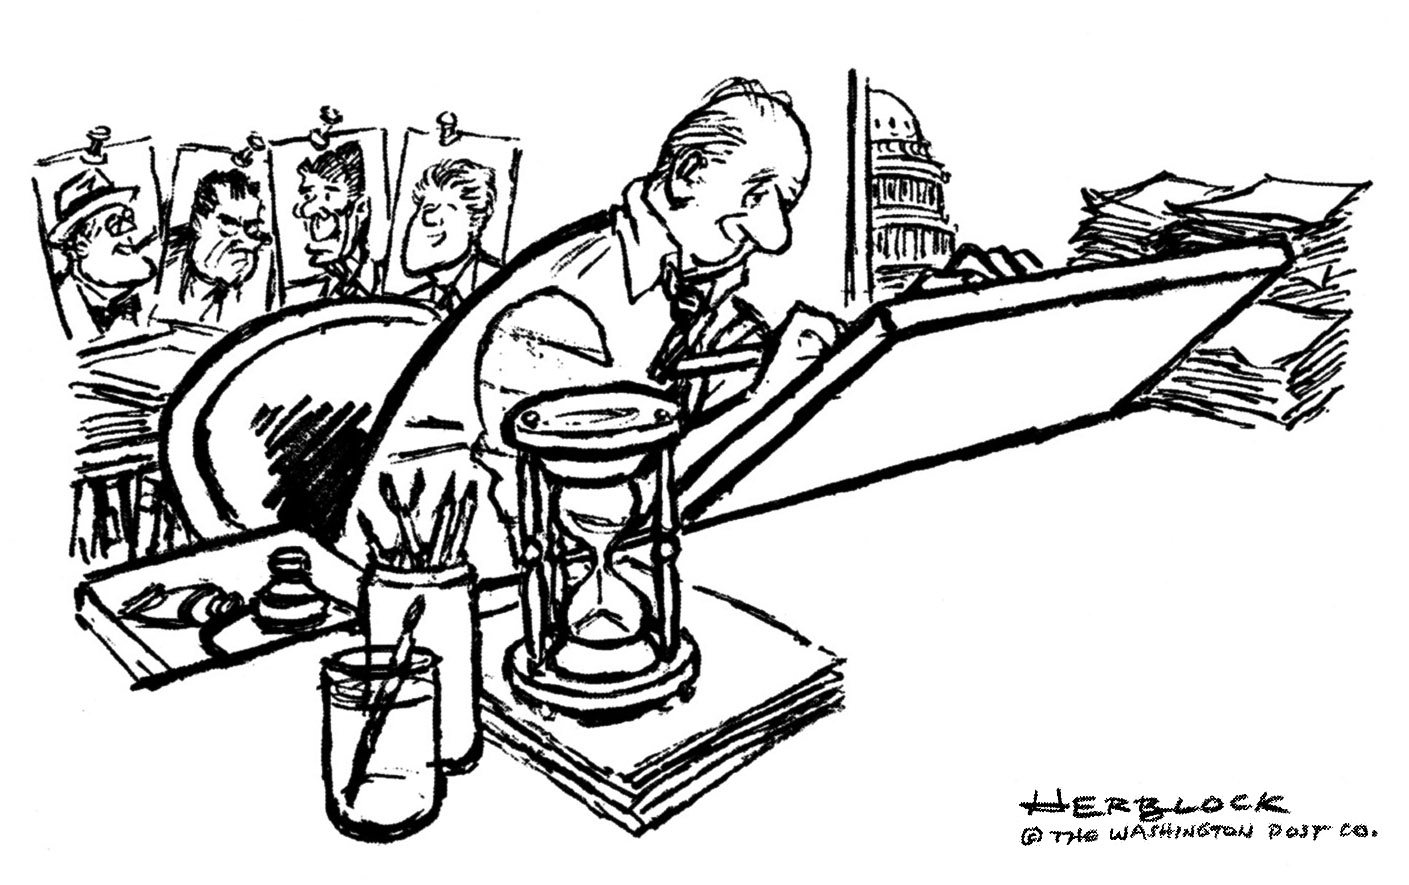 Bado's blog: The Golden Age for Editorial Cartoonists is Over